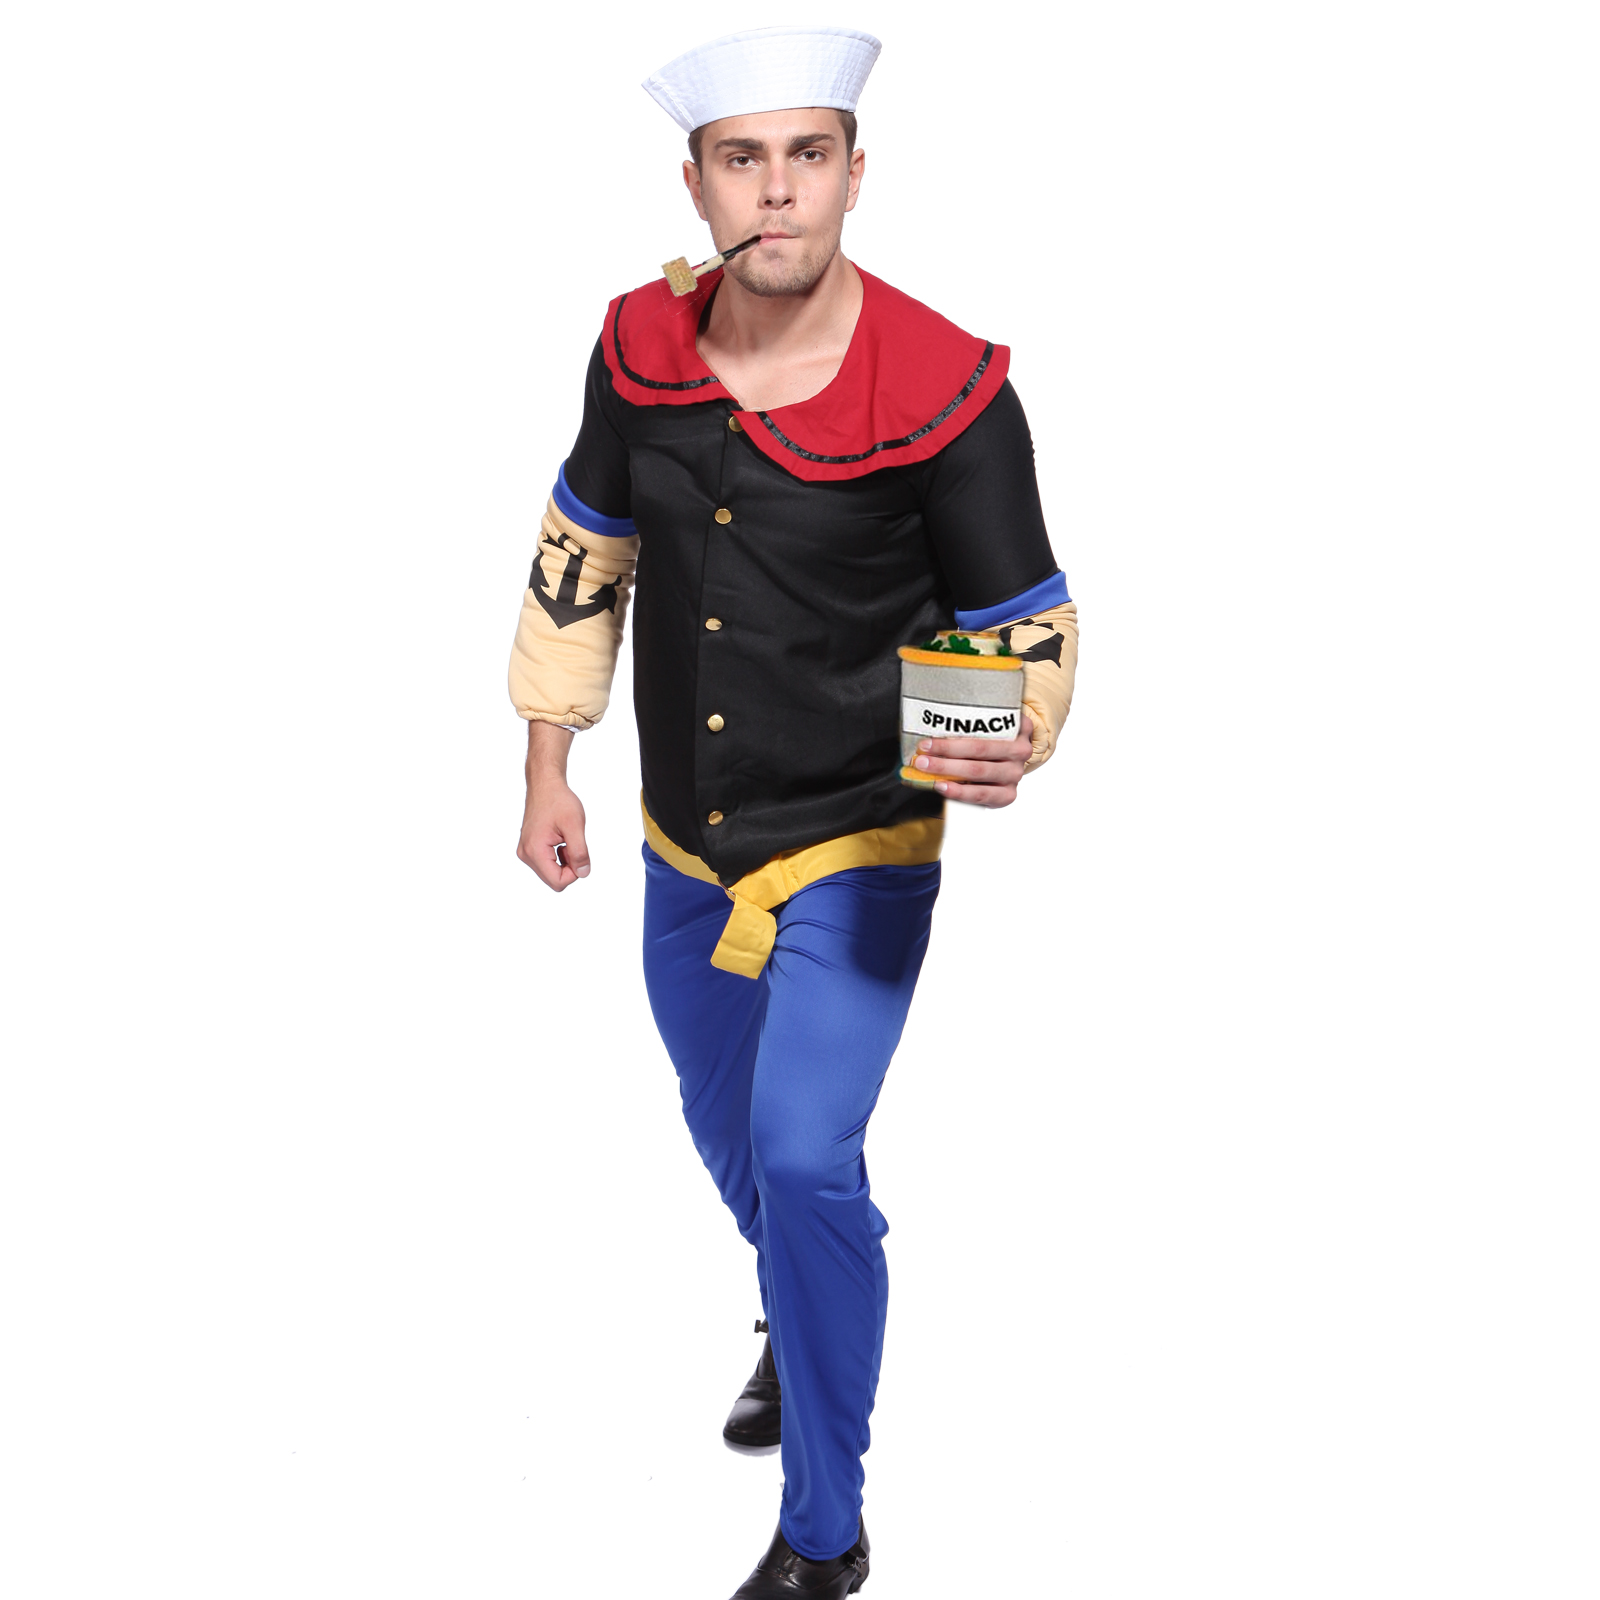 herren fasching verkleidung popeye kost m matrose der seemann halloween party ebay. Black Bedroom Furniture Sets. Home Design Ideas